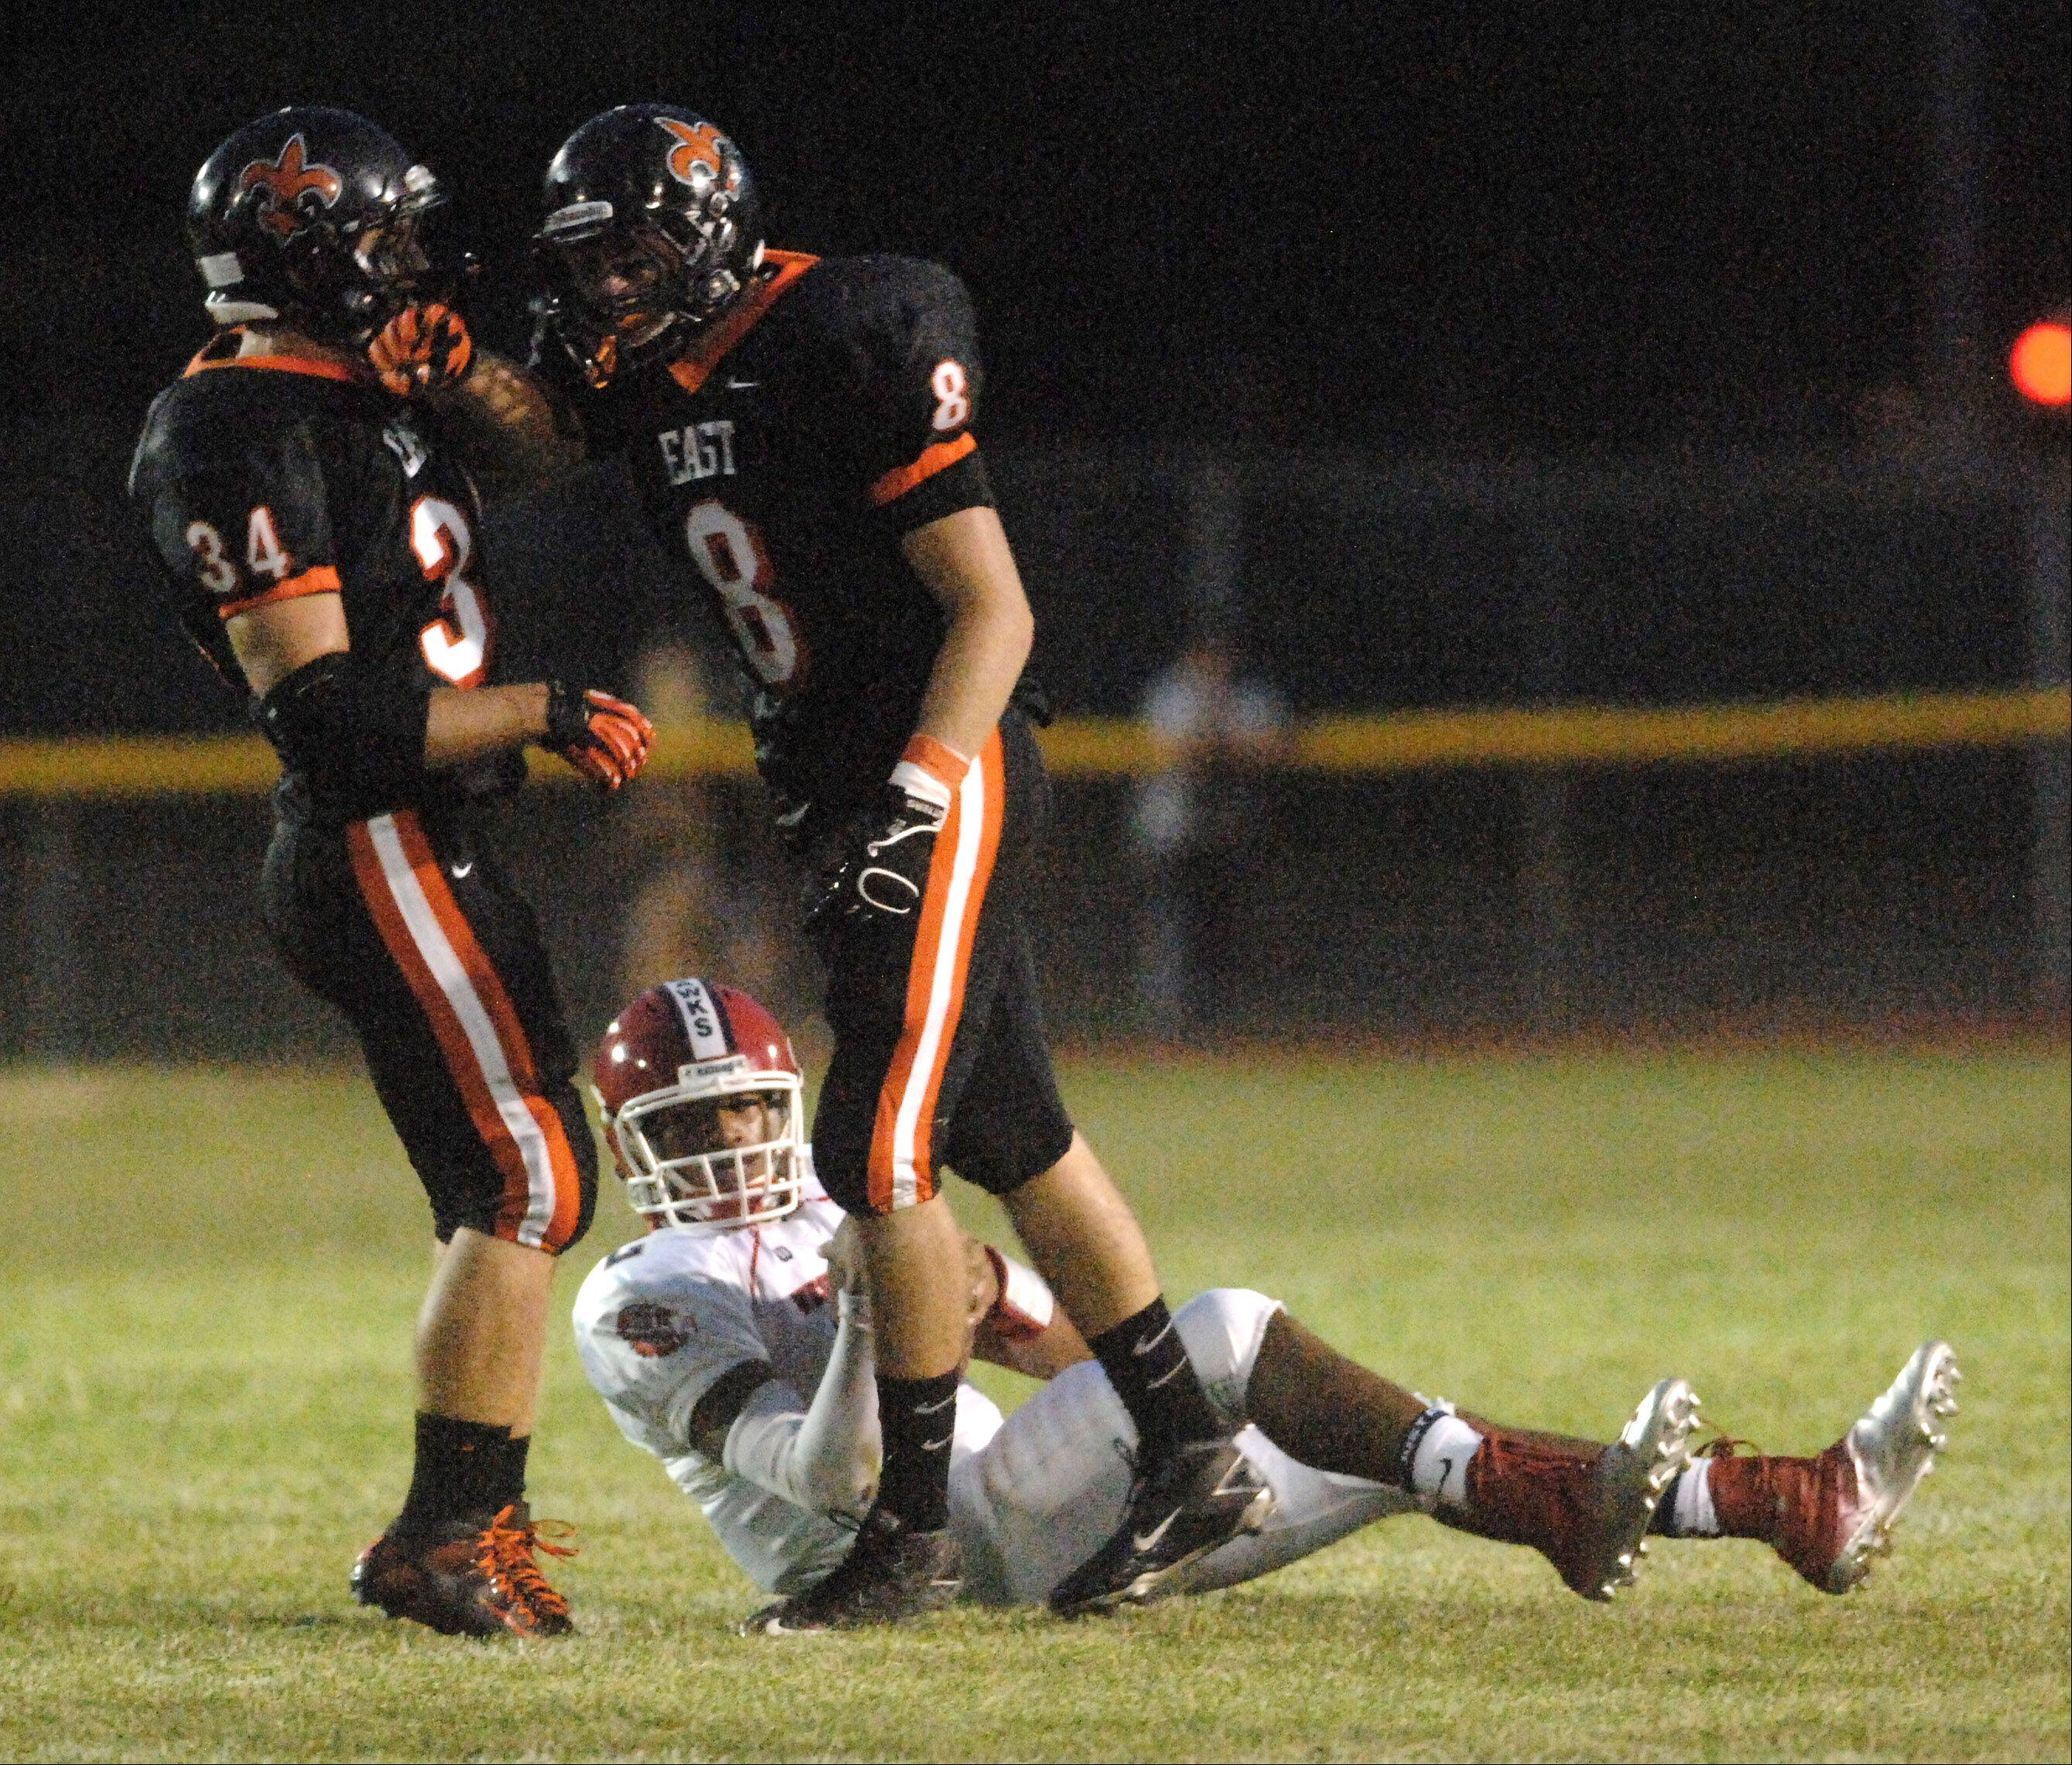 St. Charles East's Joe Hoscheit, left, and Andrew Szyman celebrate a sack of West Aurora quarterback Quintez Jones.